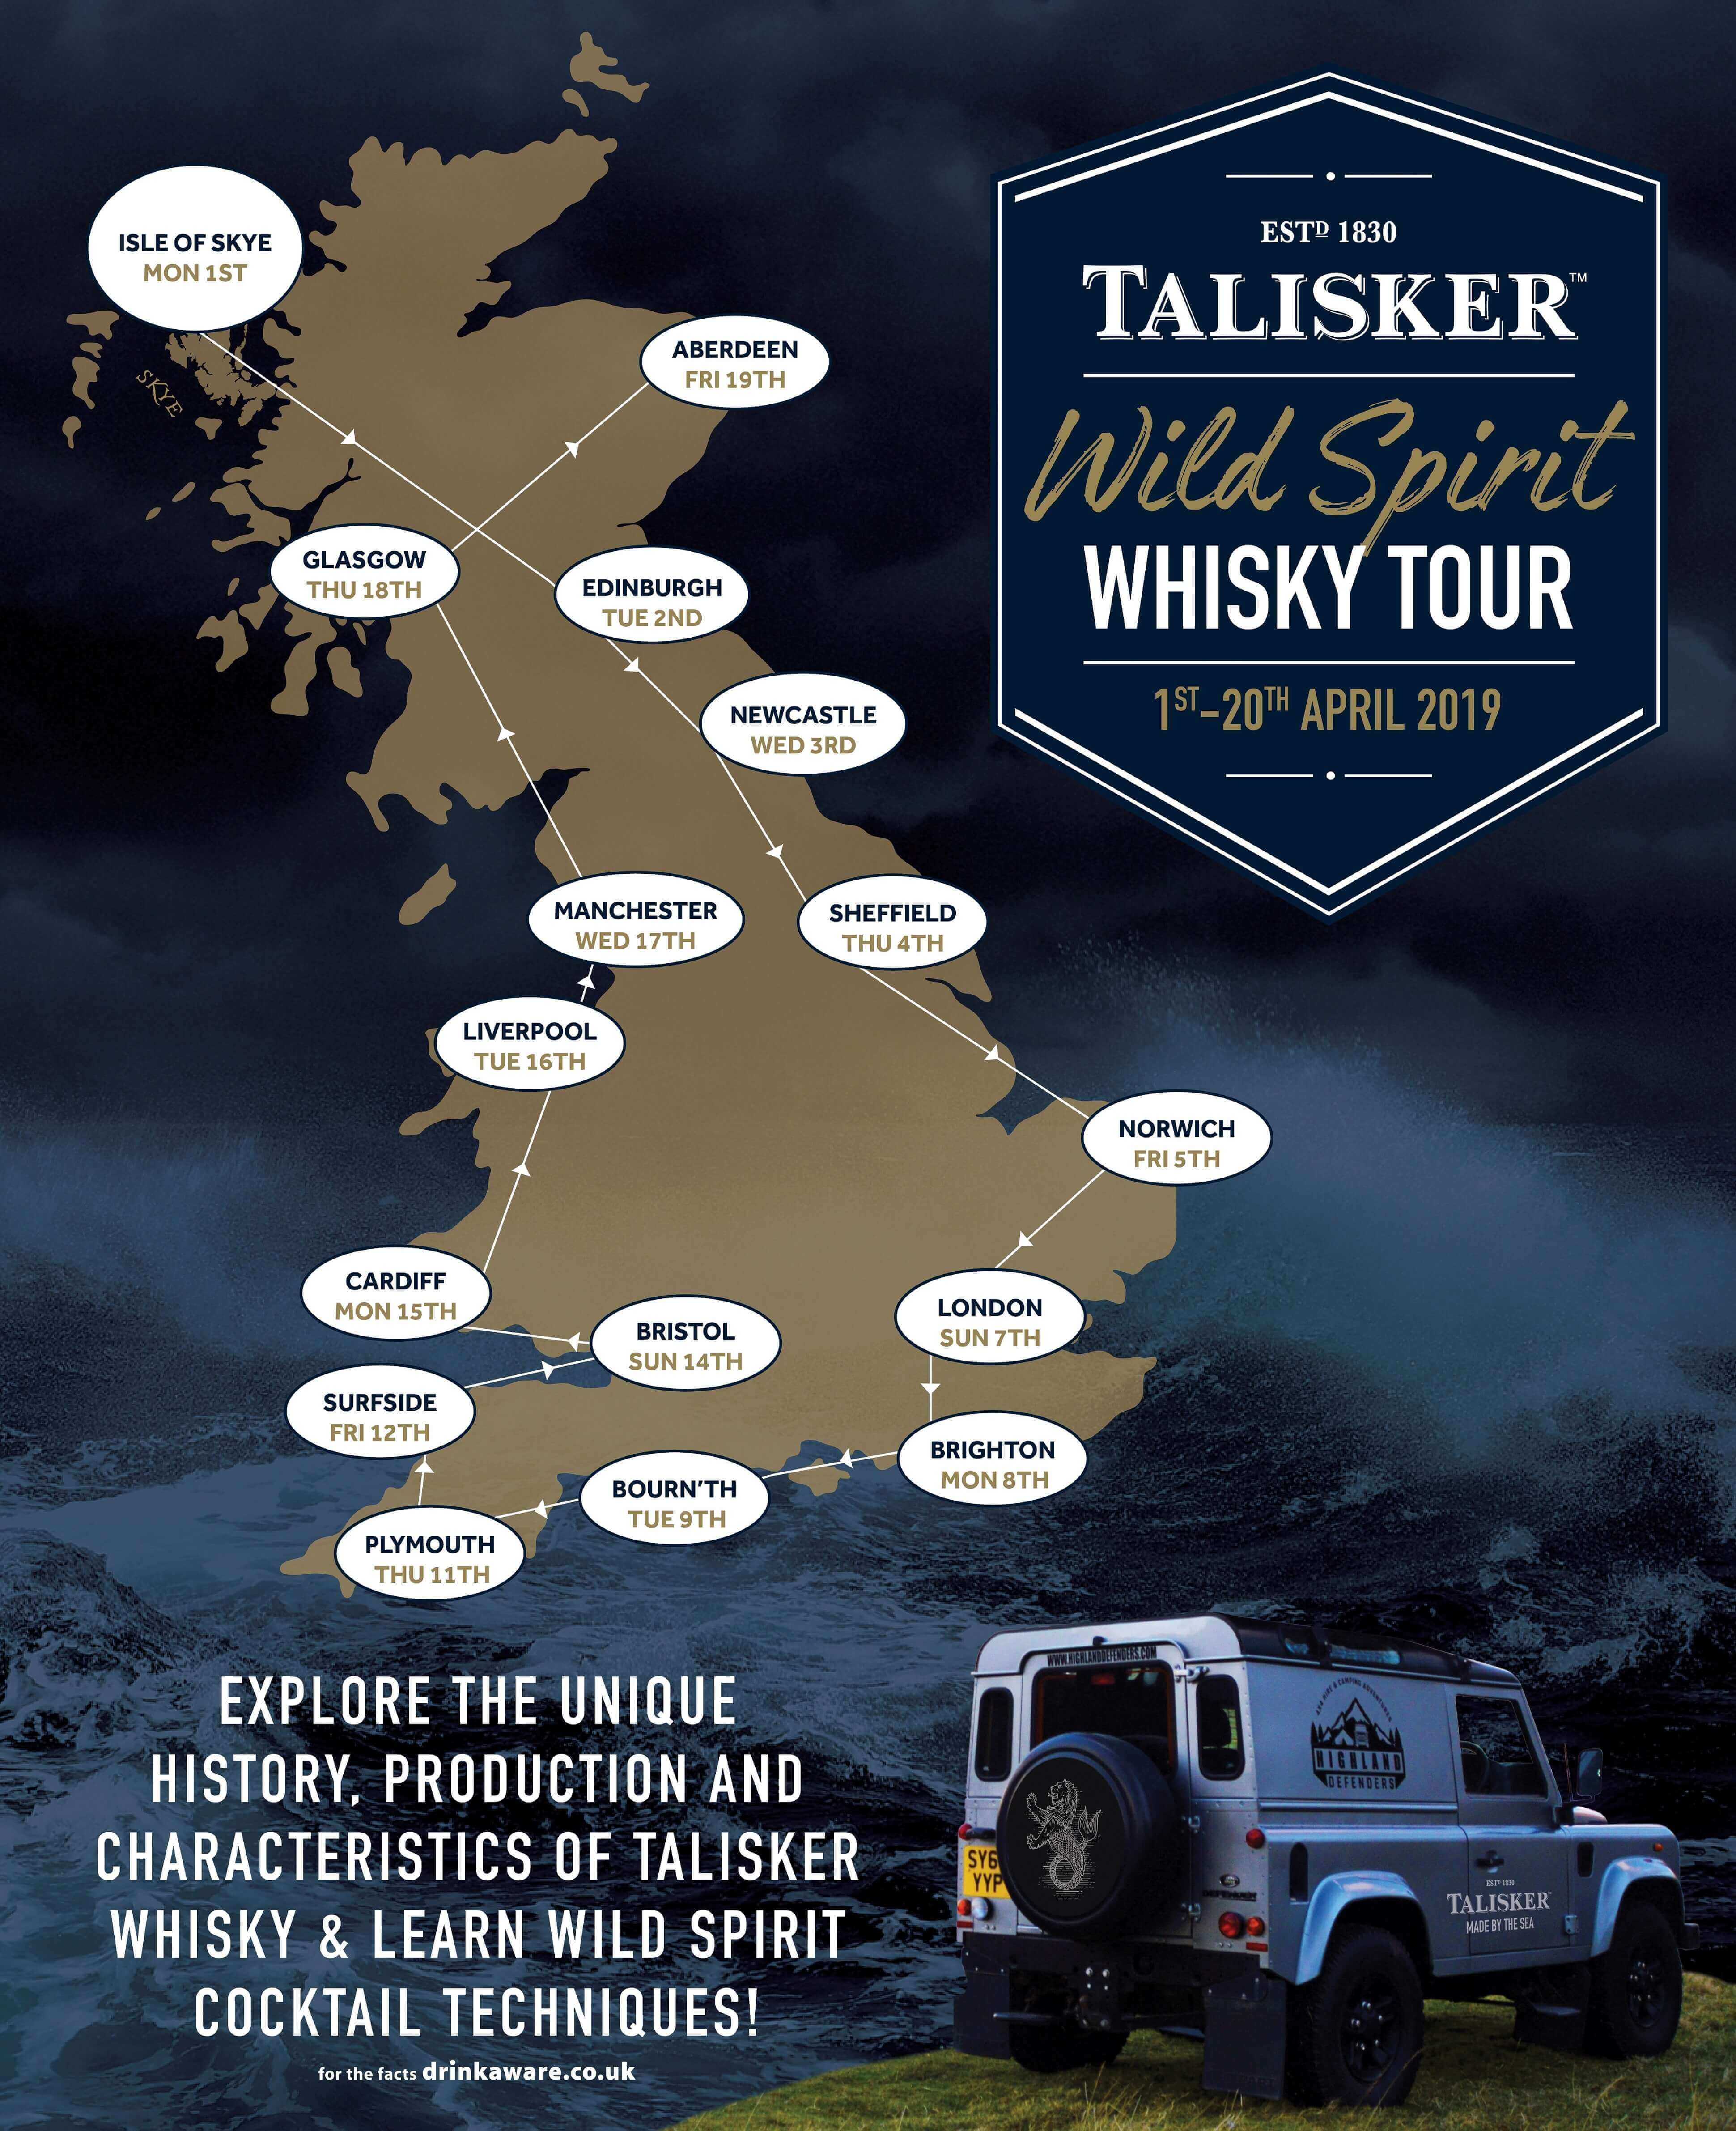 Talisker Launches Wild Spirit Whisky Tour and Bartender Competition